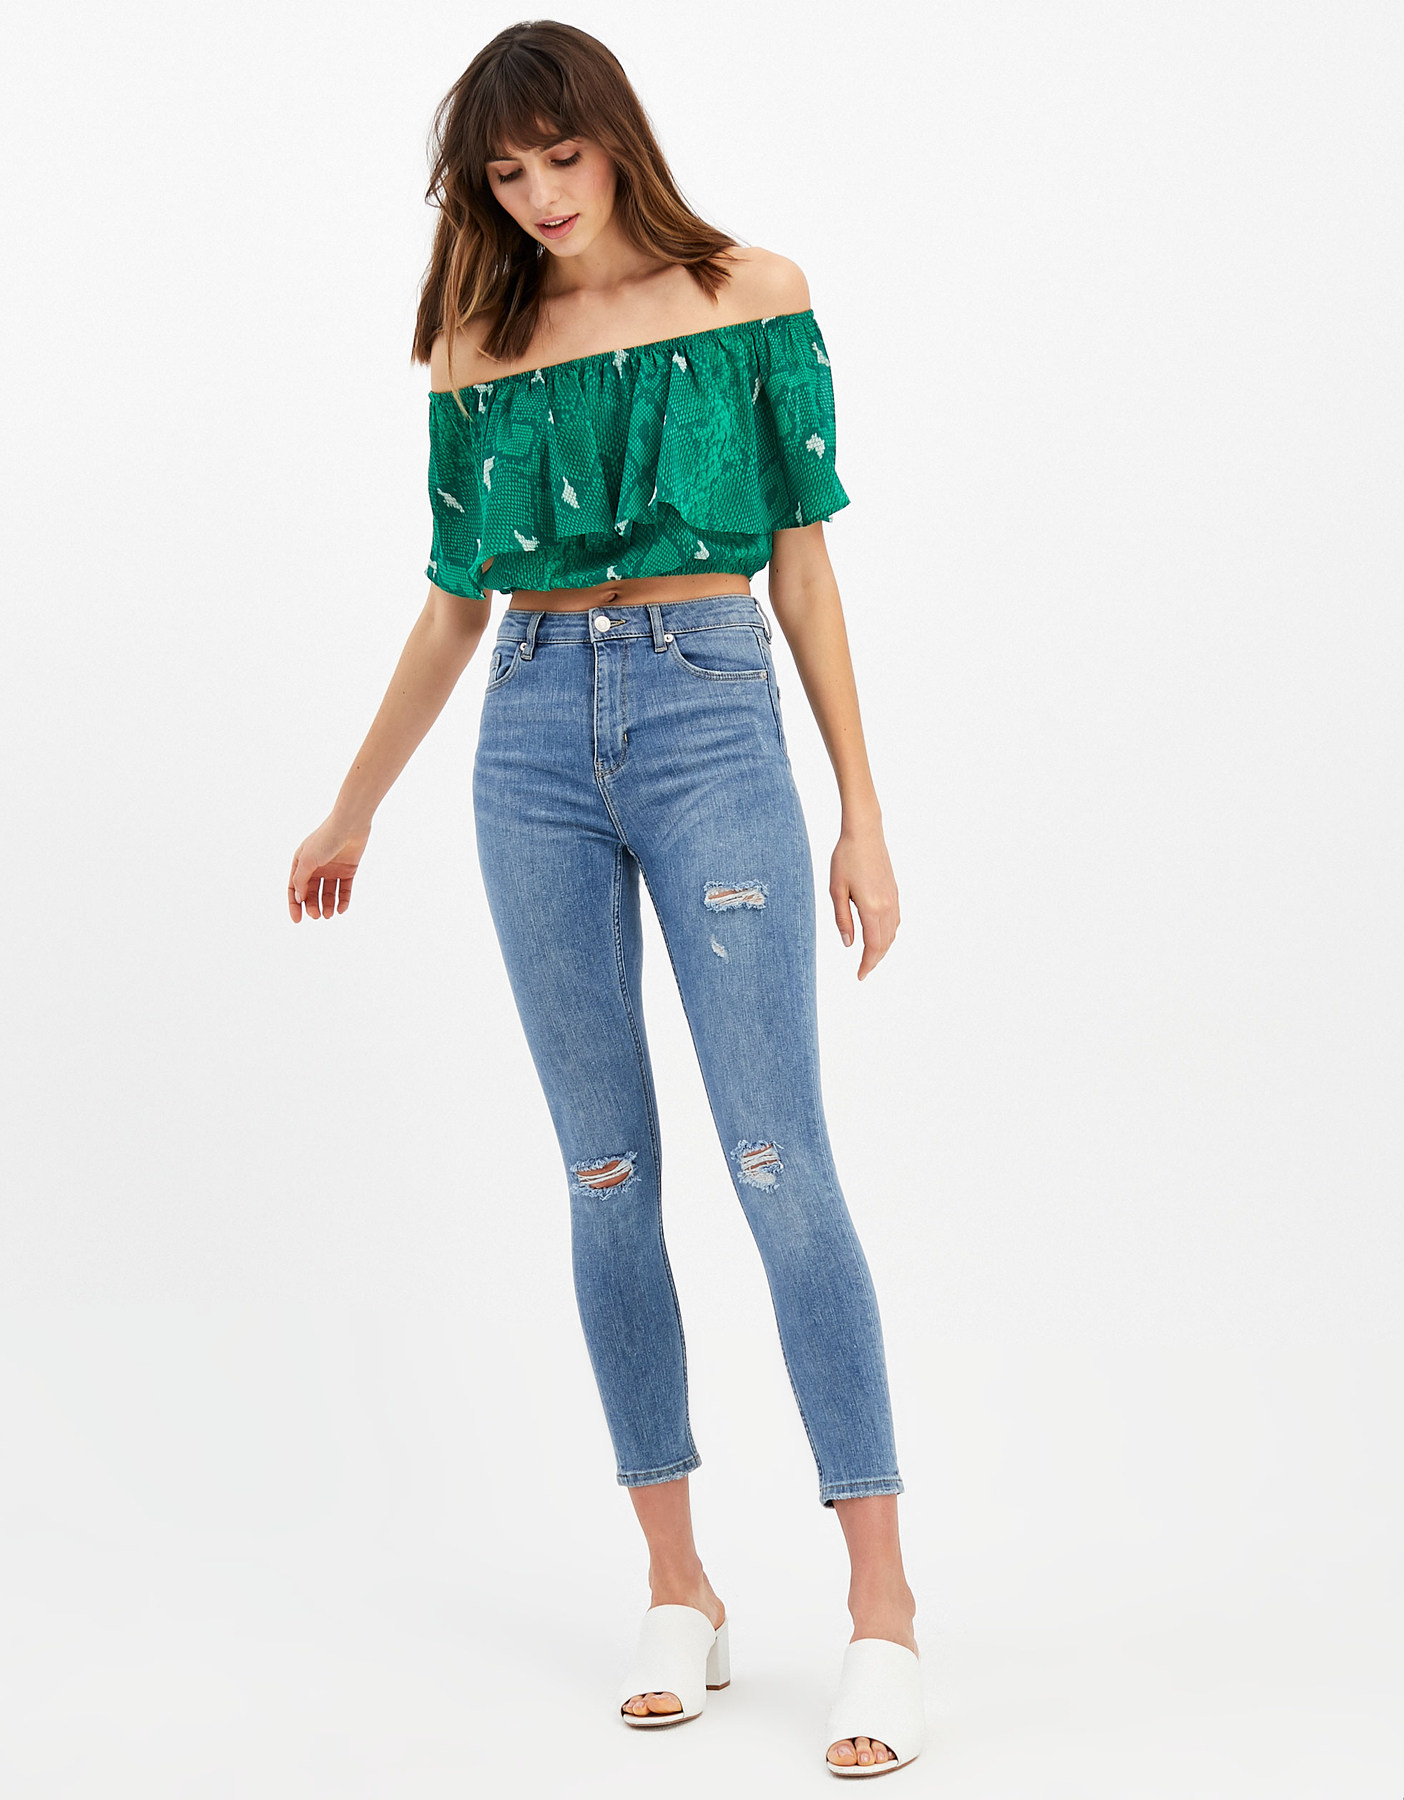 Green Snake Ruffle Top